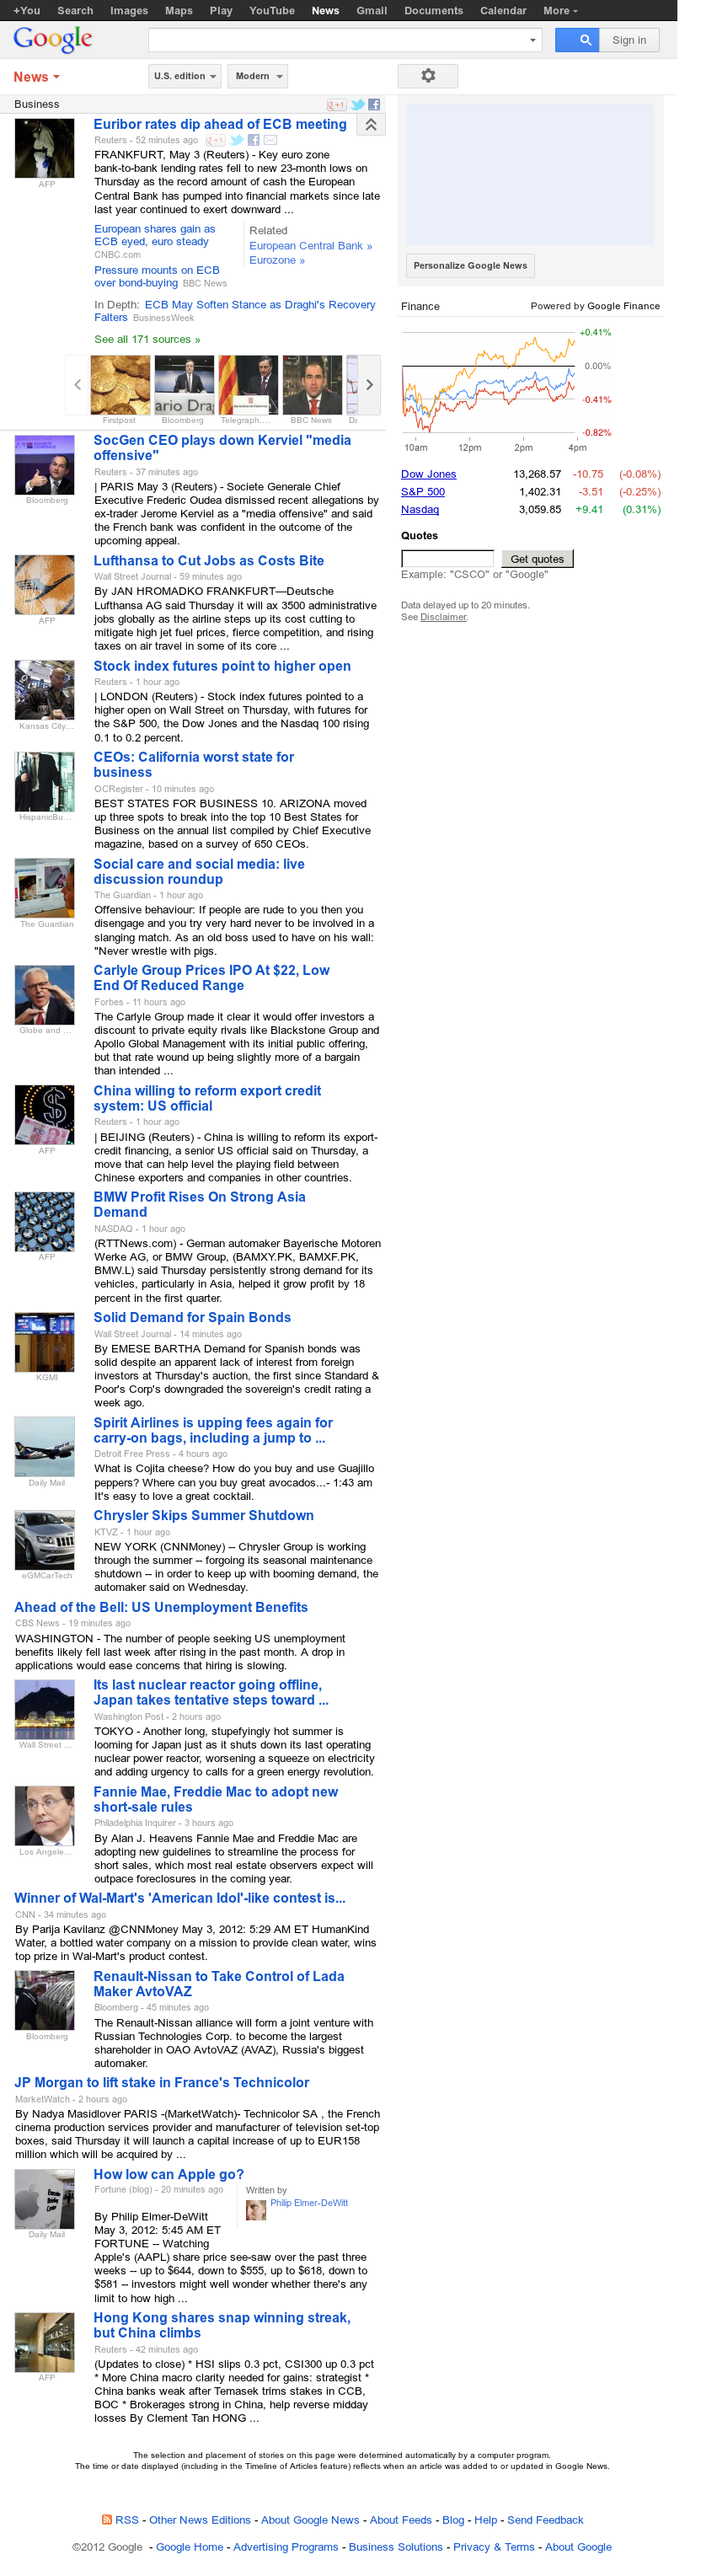 Google News: Business at Thursday May 3, 2012, 10:05 a.m. UTC